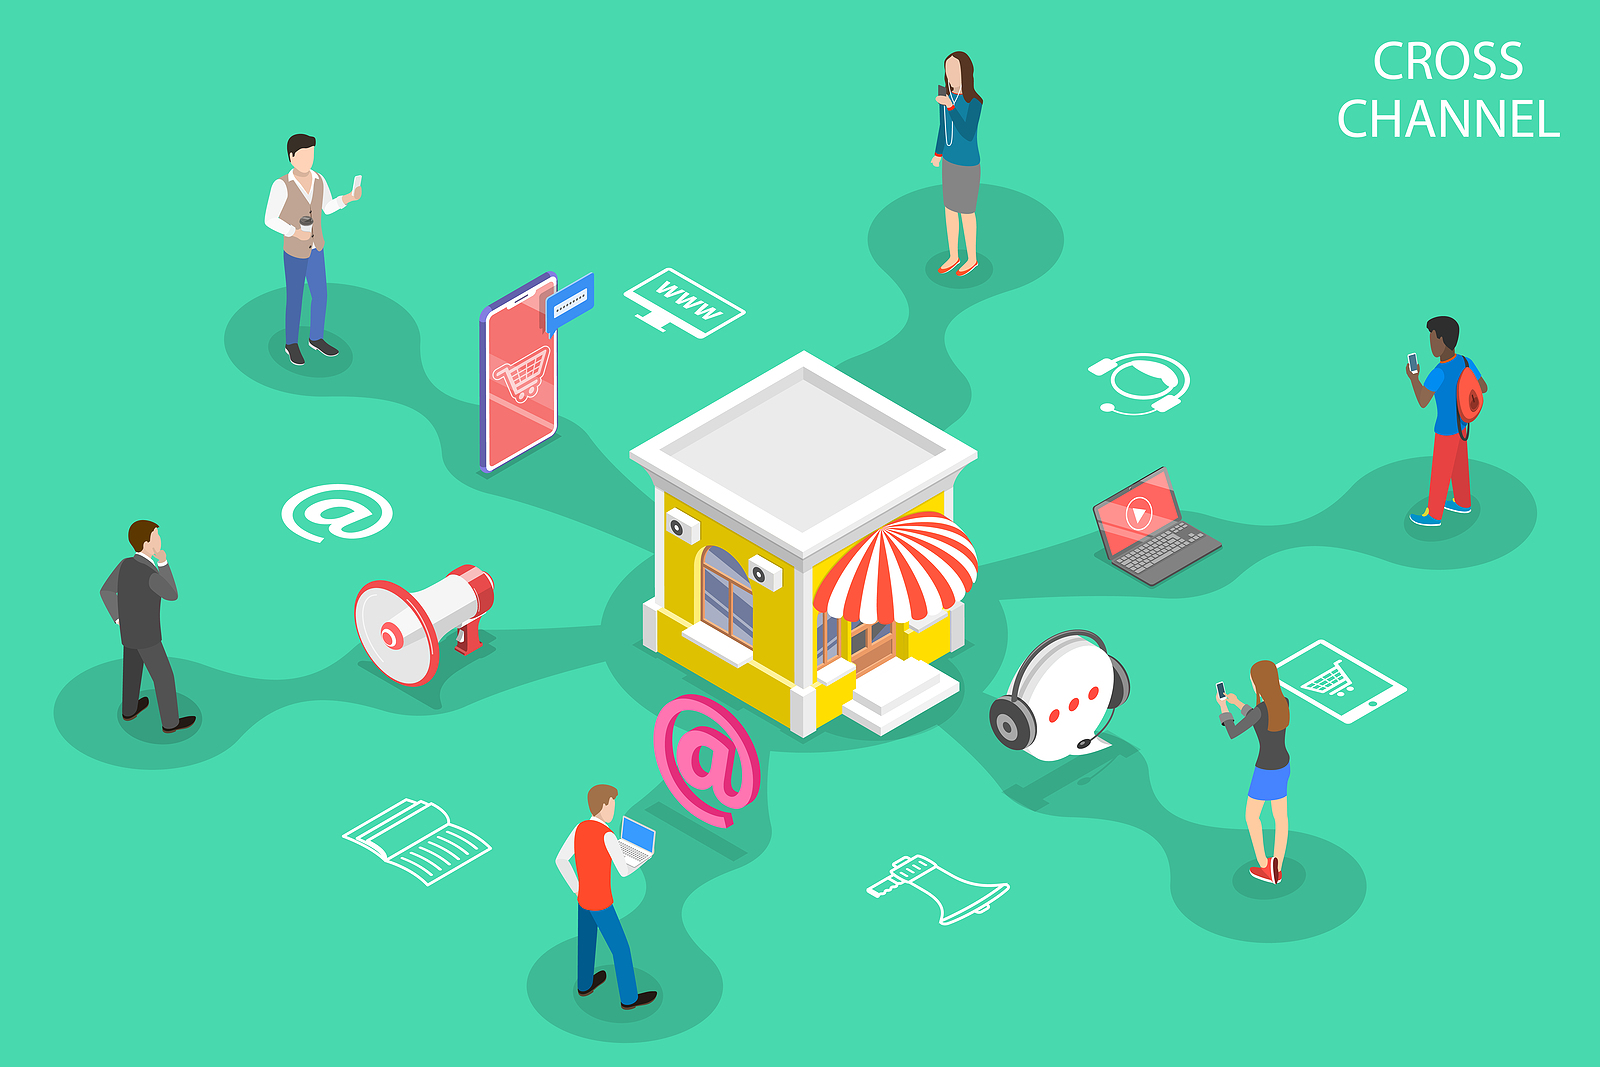 Image on a green background of diverse customers interacting with the same store on different fronts with varying online platform icons connecting them.